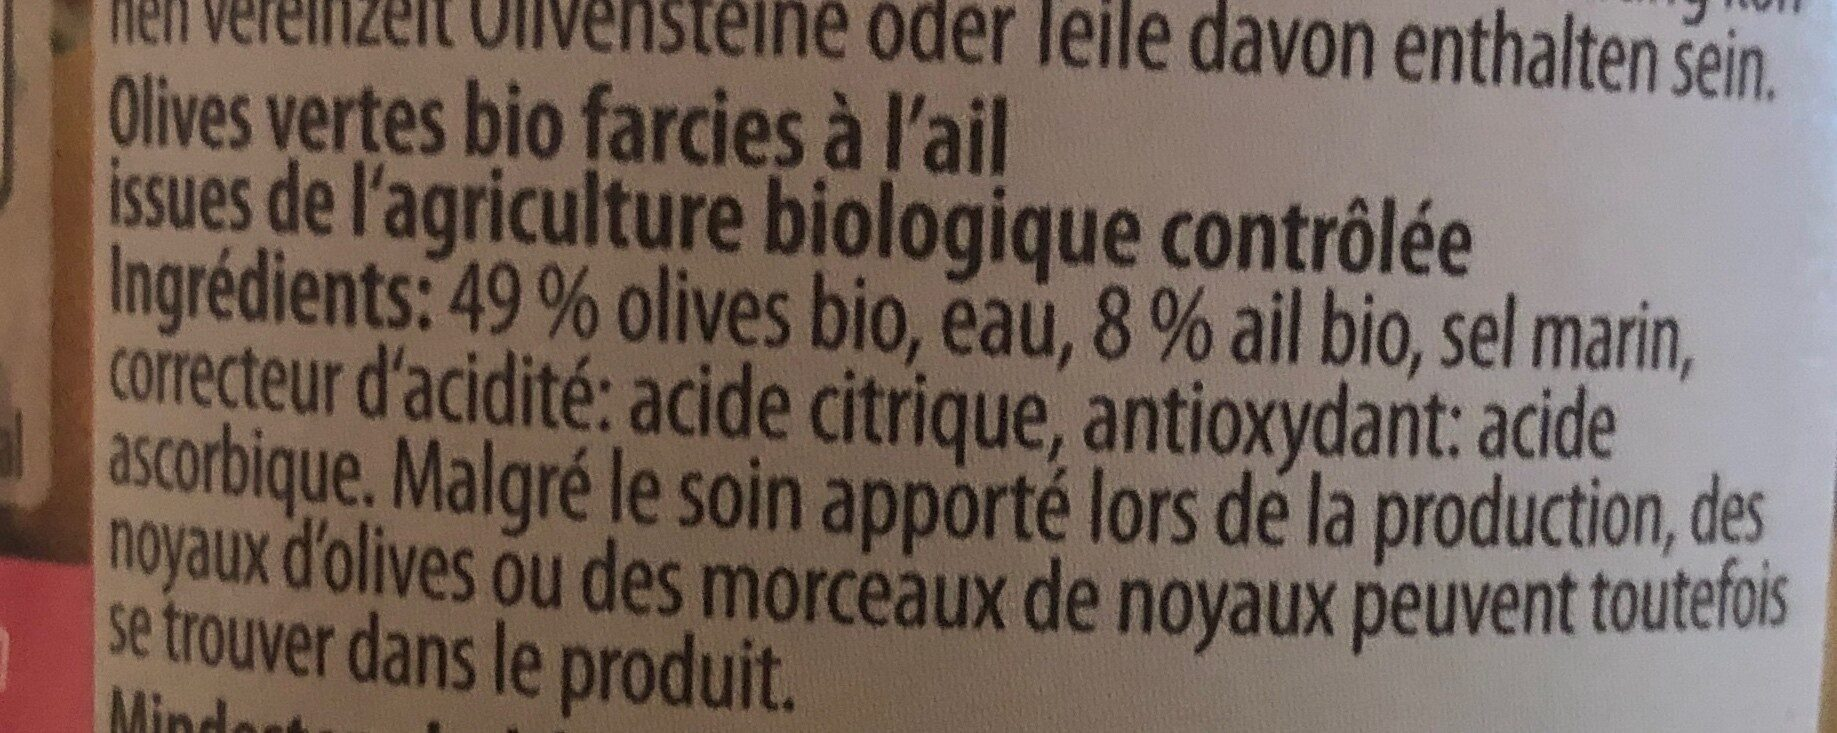 Olives vertes bio farcies à l'ail - Ingredients